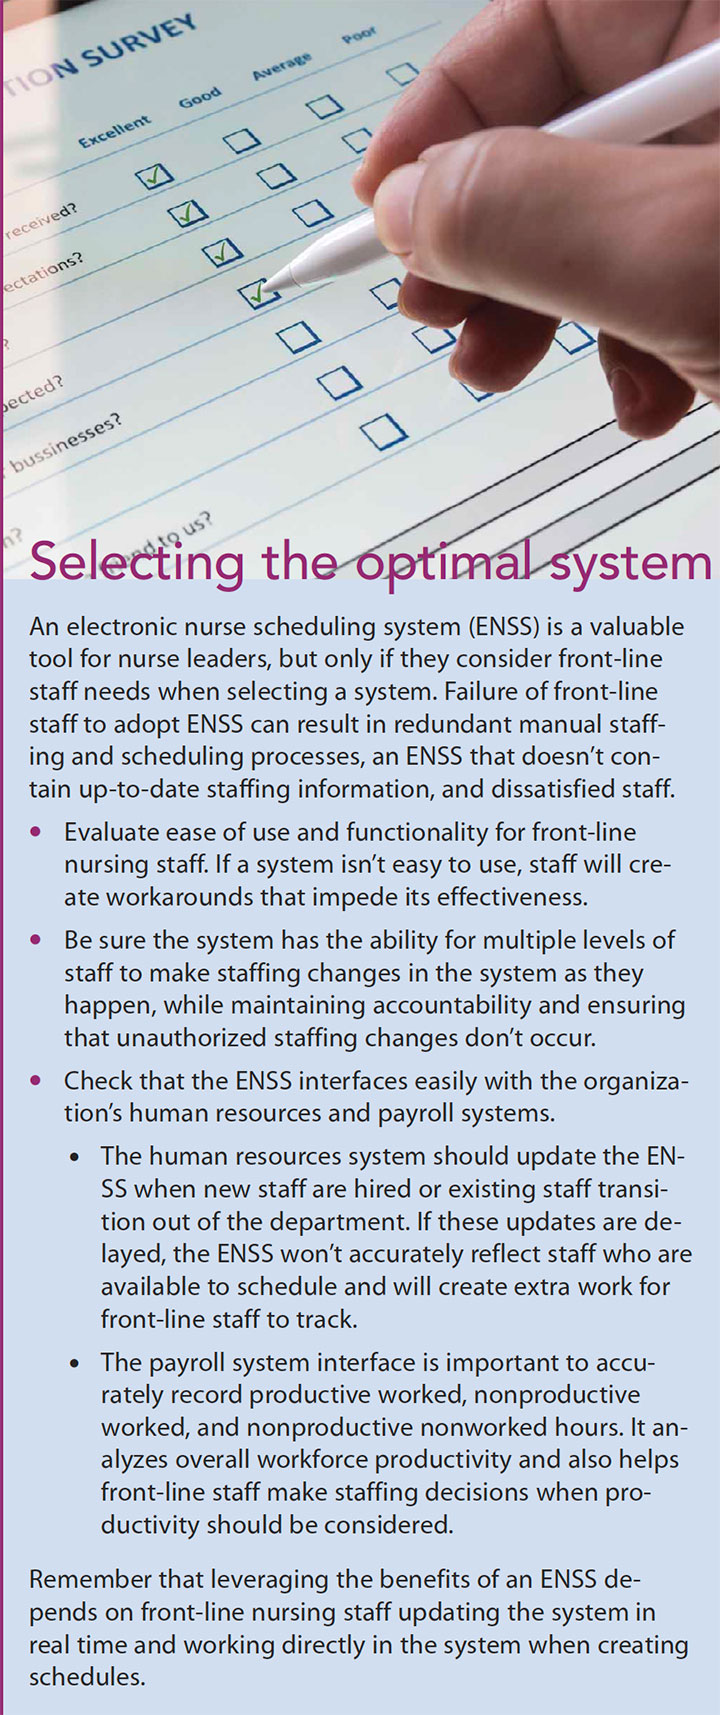 electronic nurse scheduling system selecting optimal system